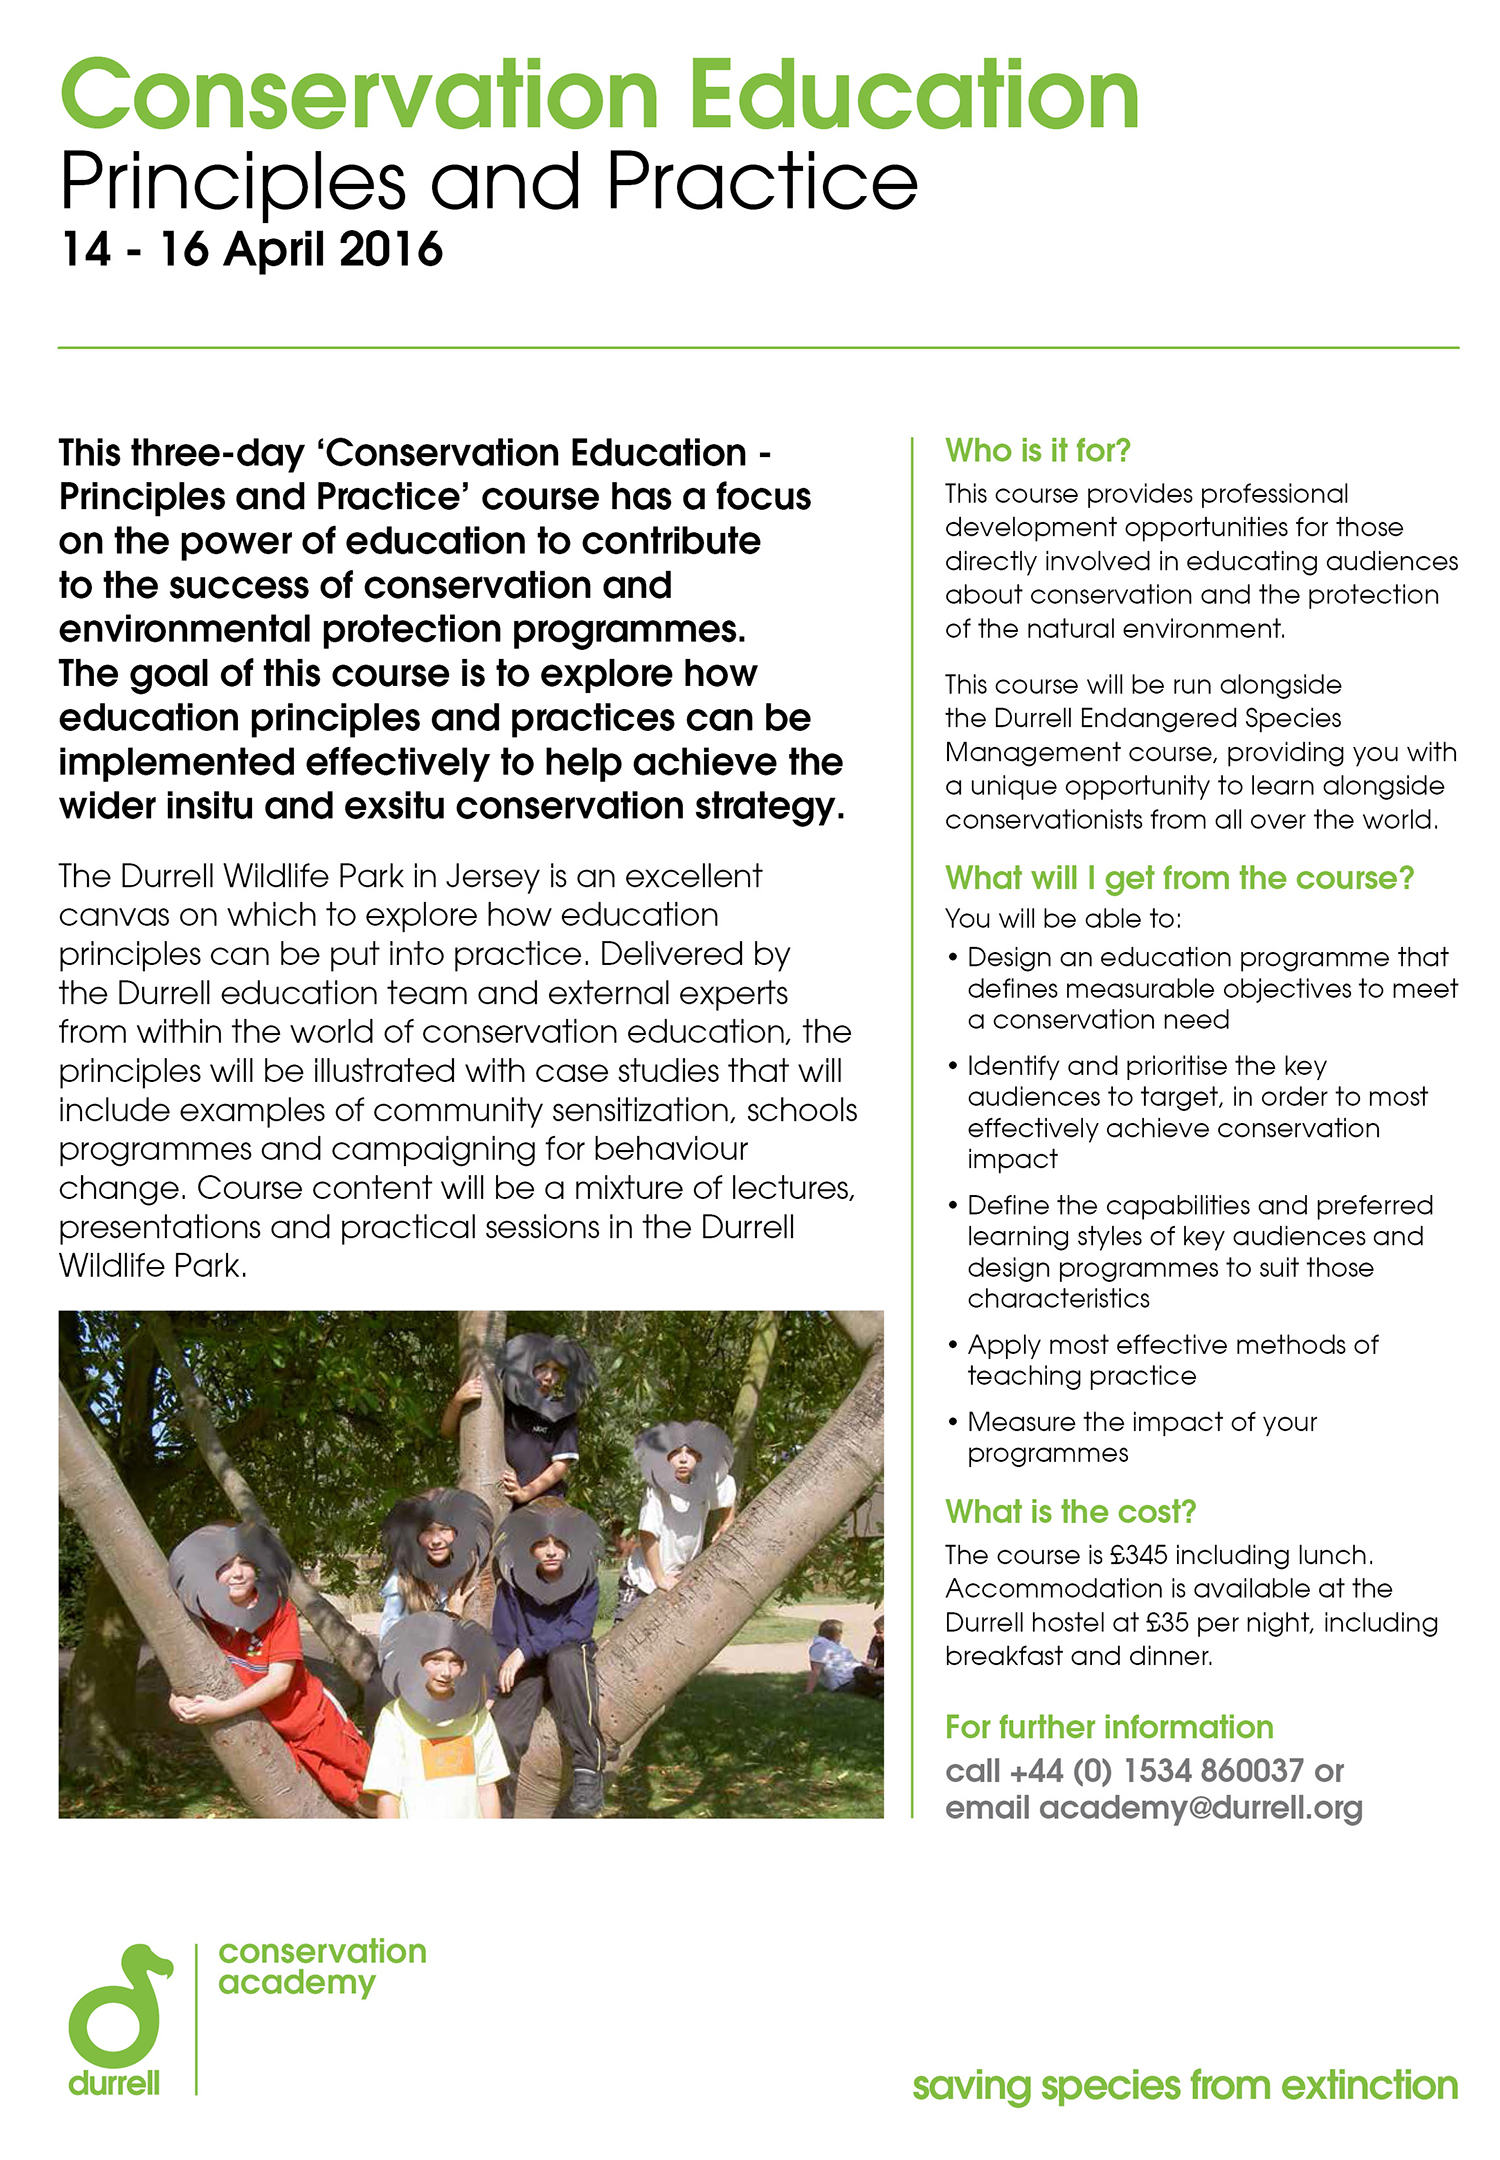 Durrell Education Course